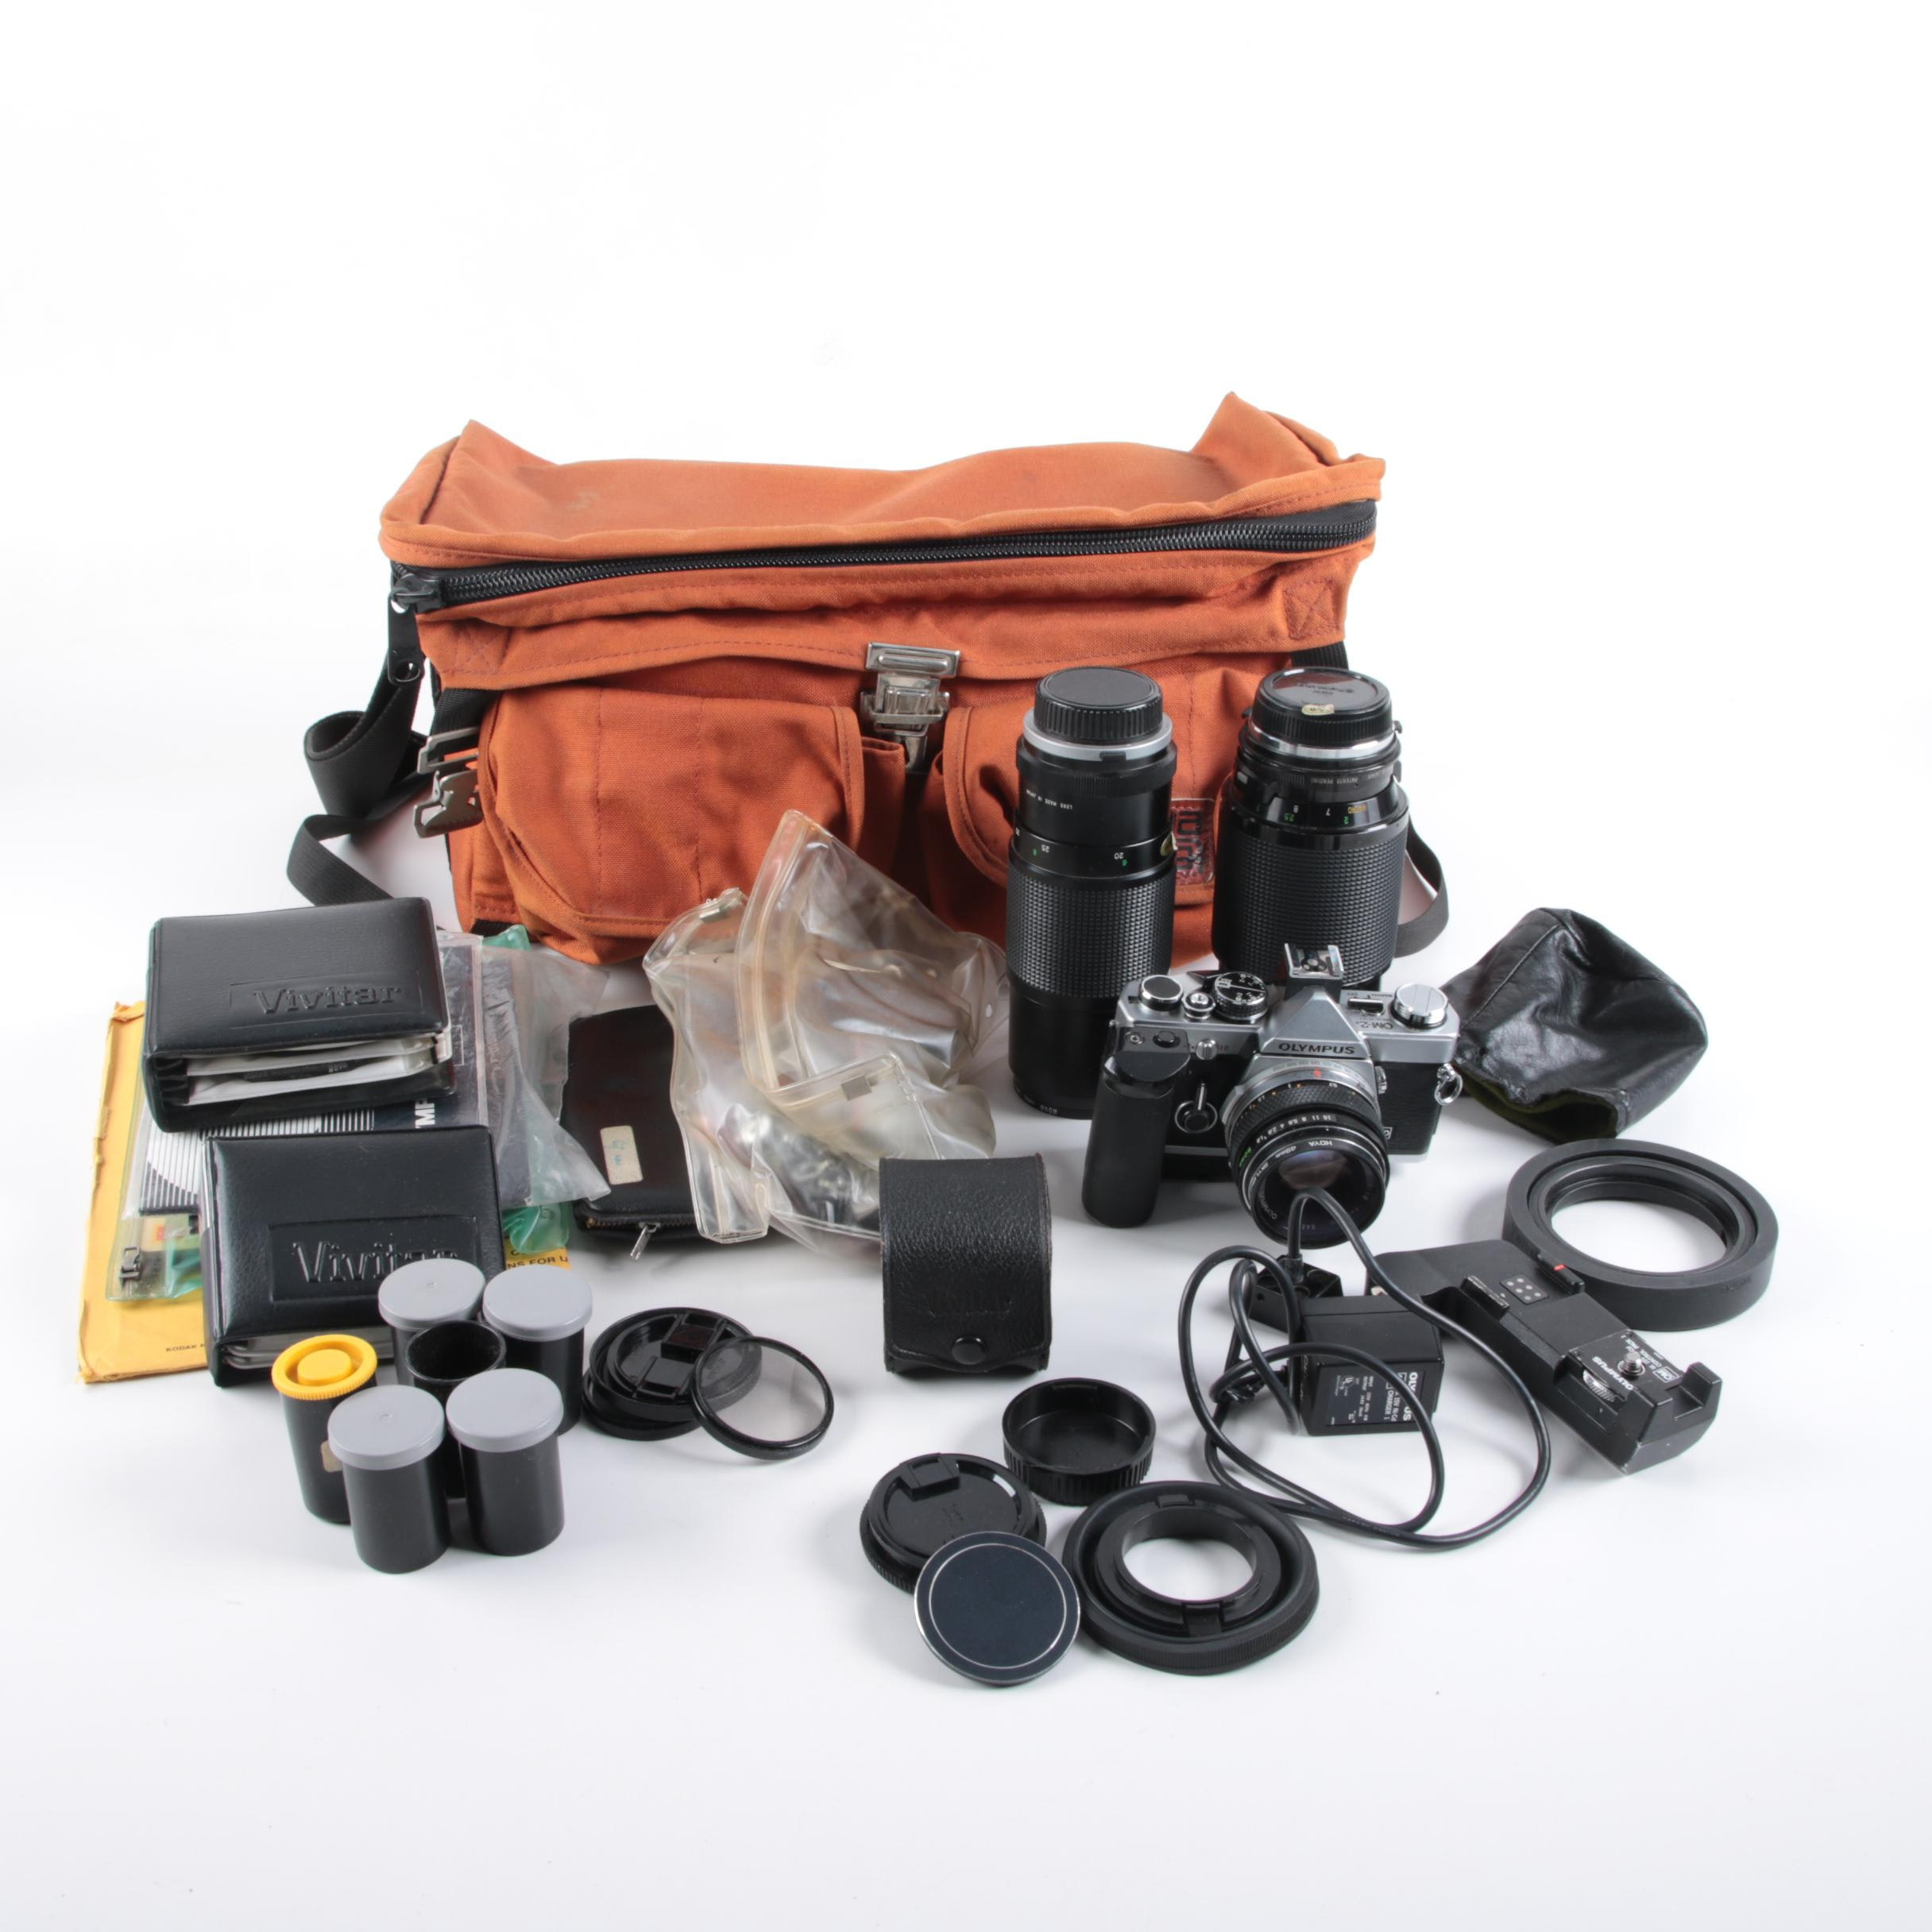 Vintage Olympus OM-2 SLR Camera with Accessories